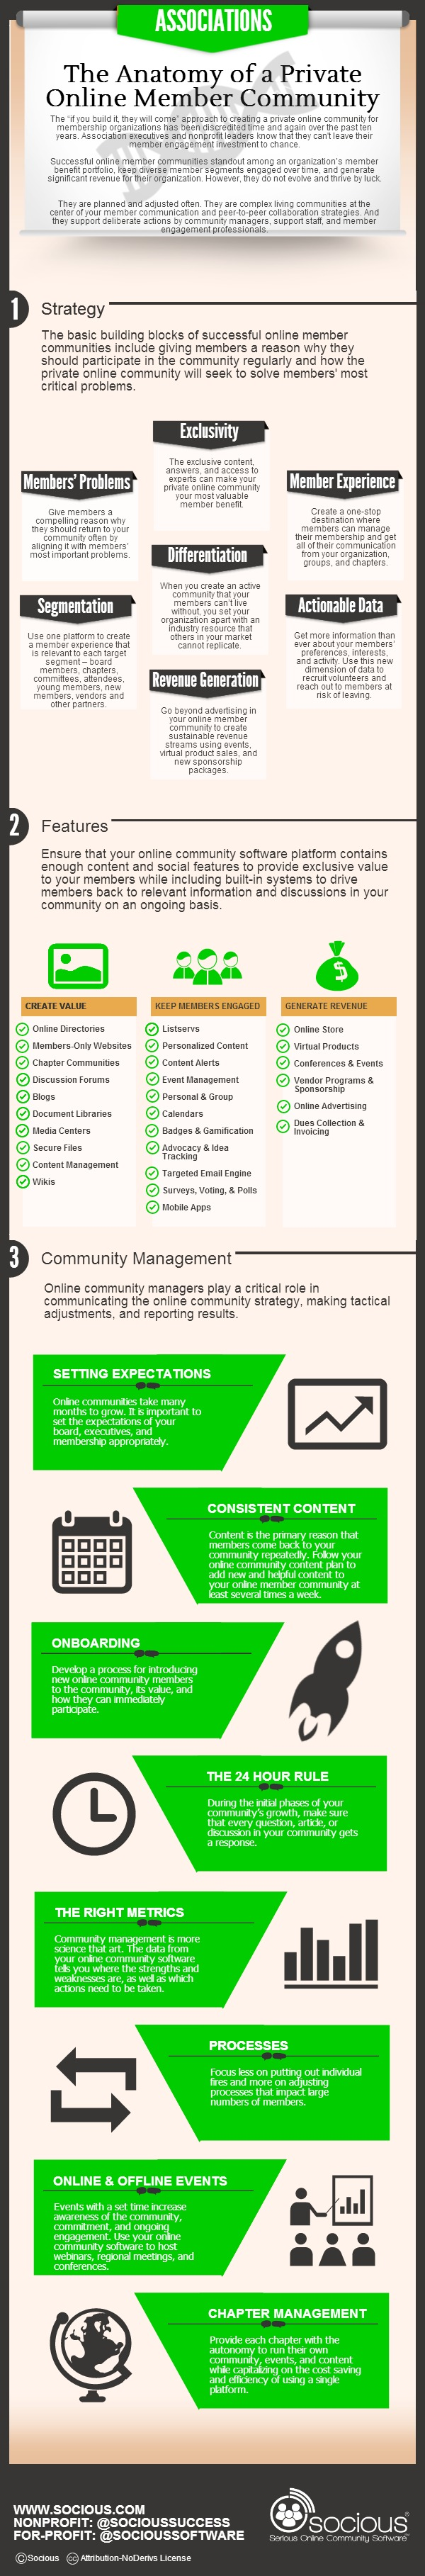 The Anatomy of a Private Online Member Community [Infographic] image infographic anatomy private online member community associations v21